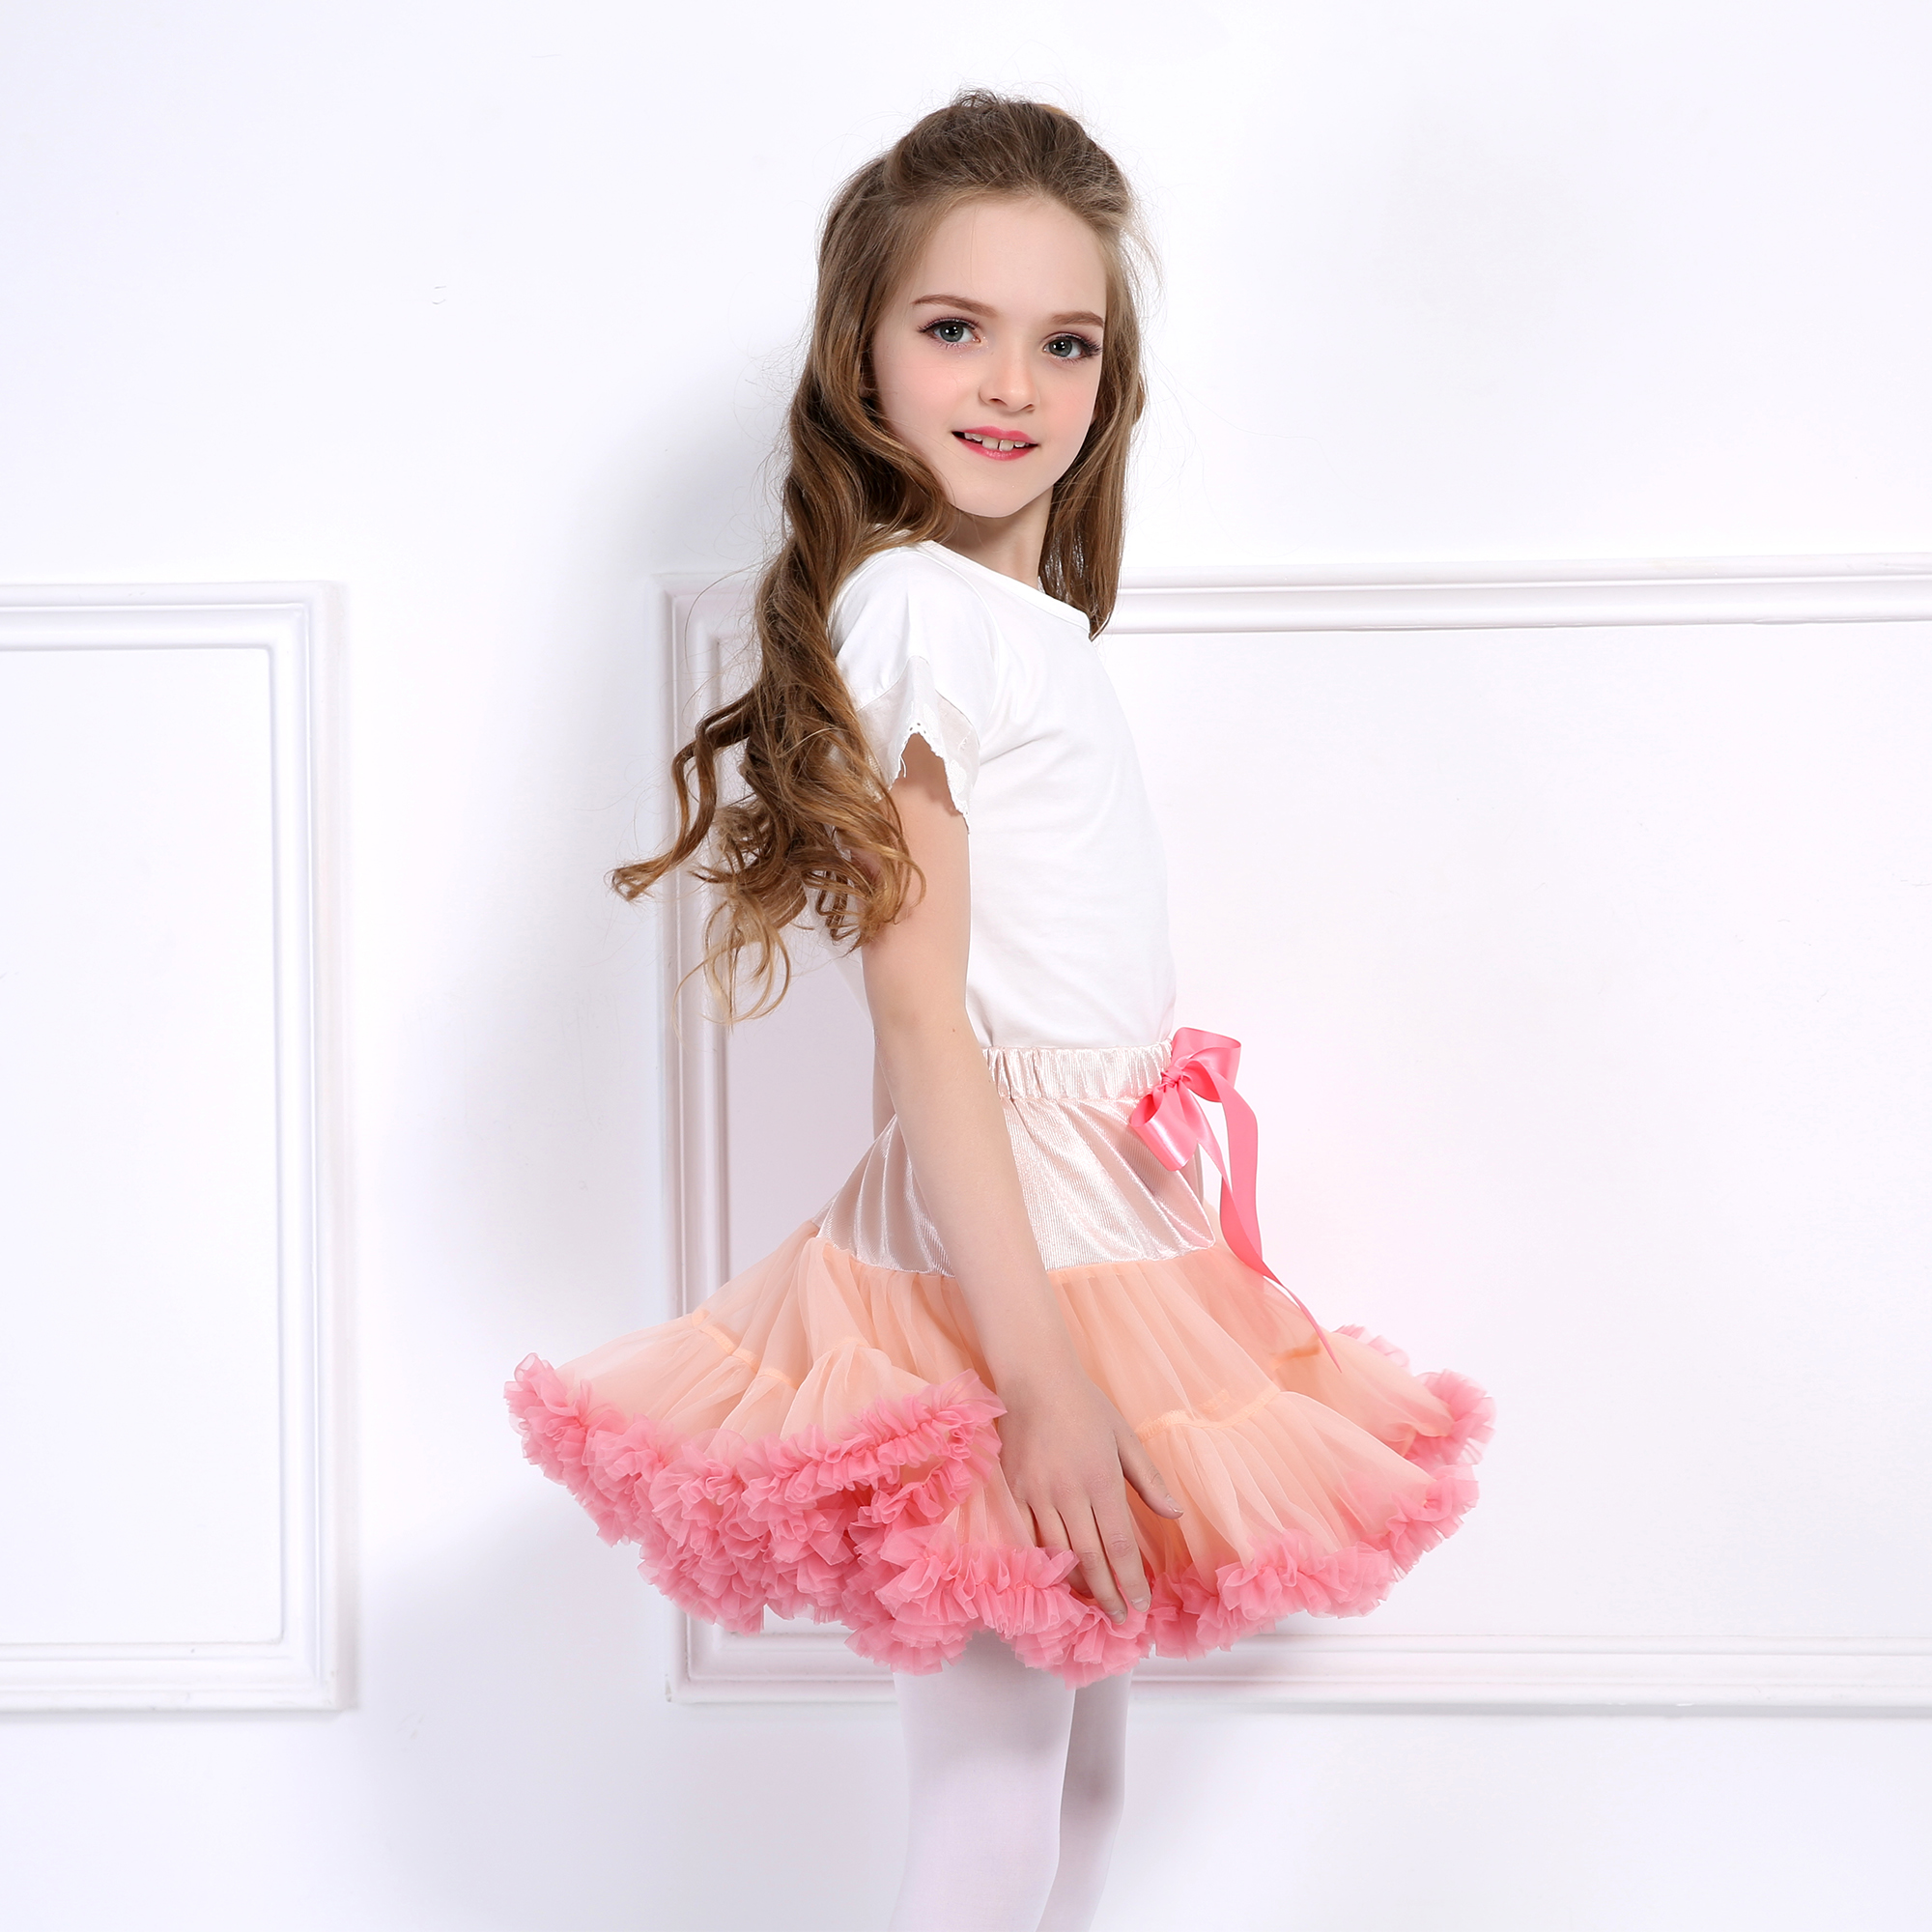 2pcs-Baby-Girls-Tutu-Skirts-Headband-Fluffy-Kids-Pettiskirts-Children-Clothes-Princess-Dance-Party-Tulle-Petticoat-Wholesale-2